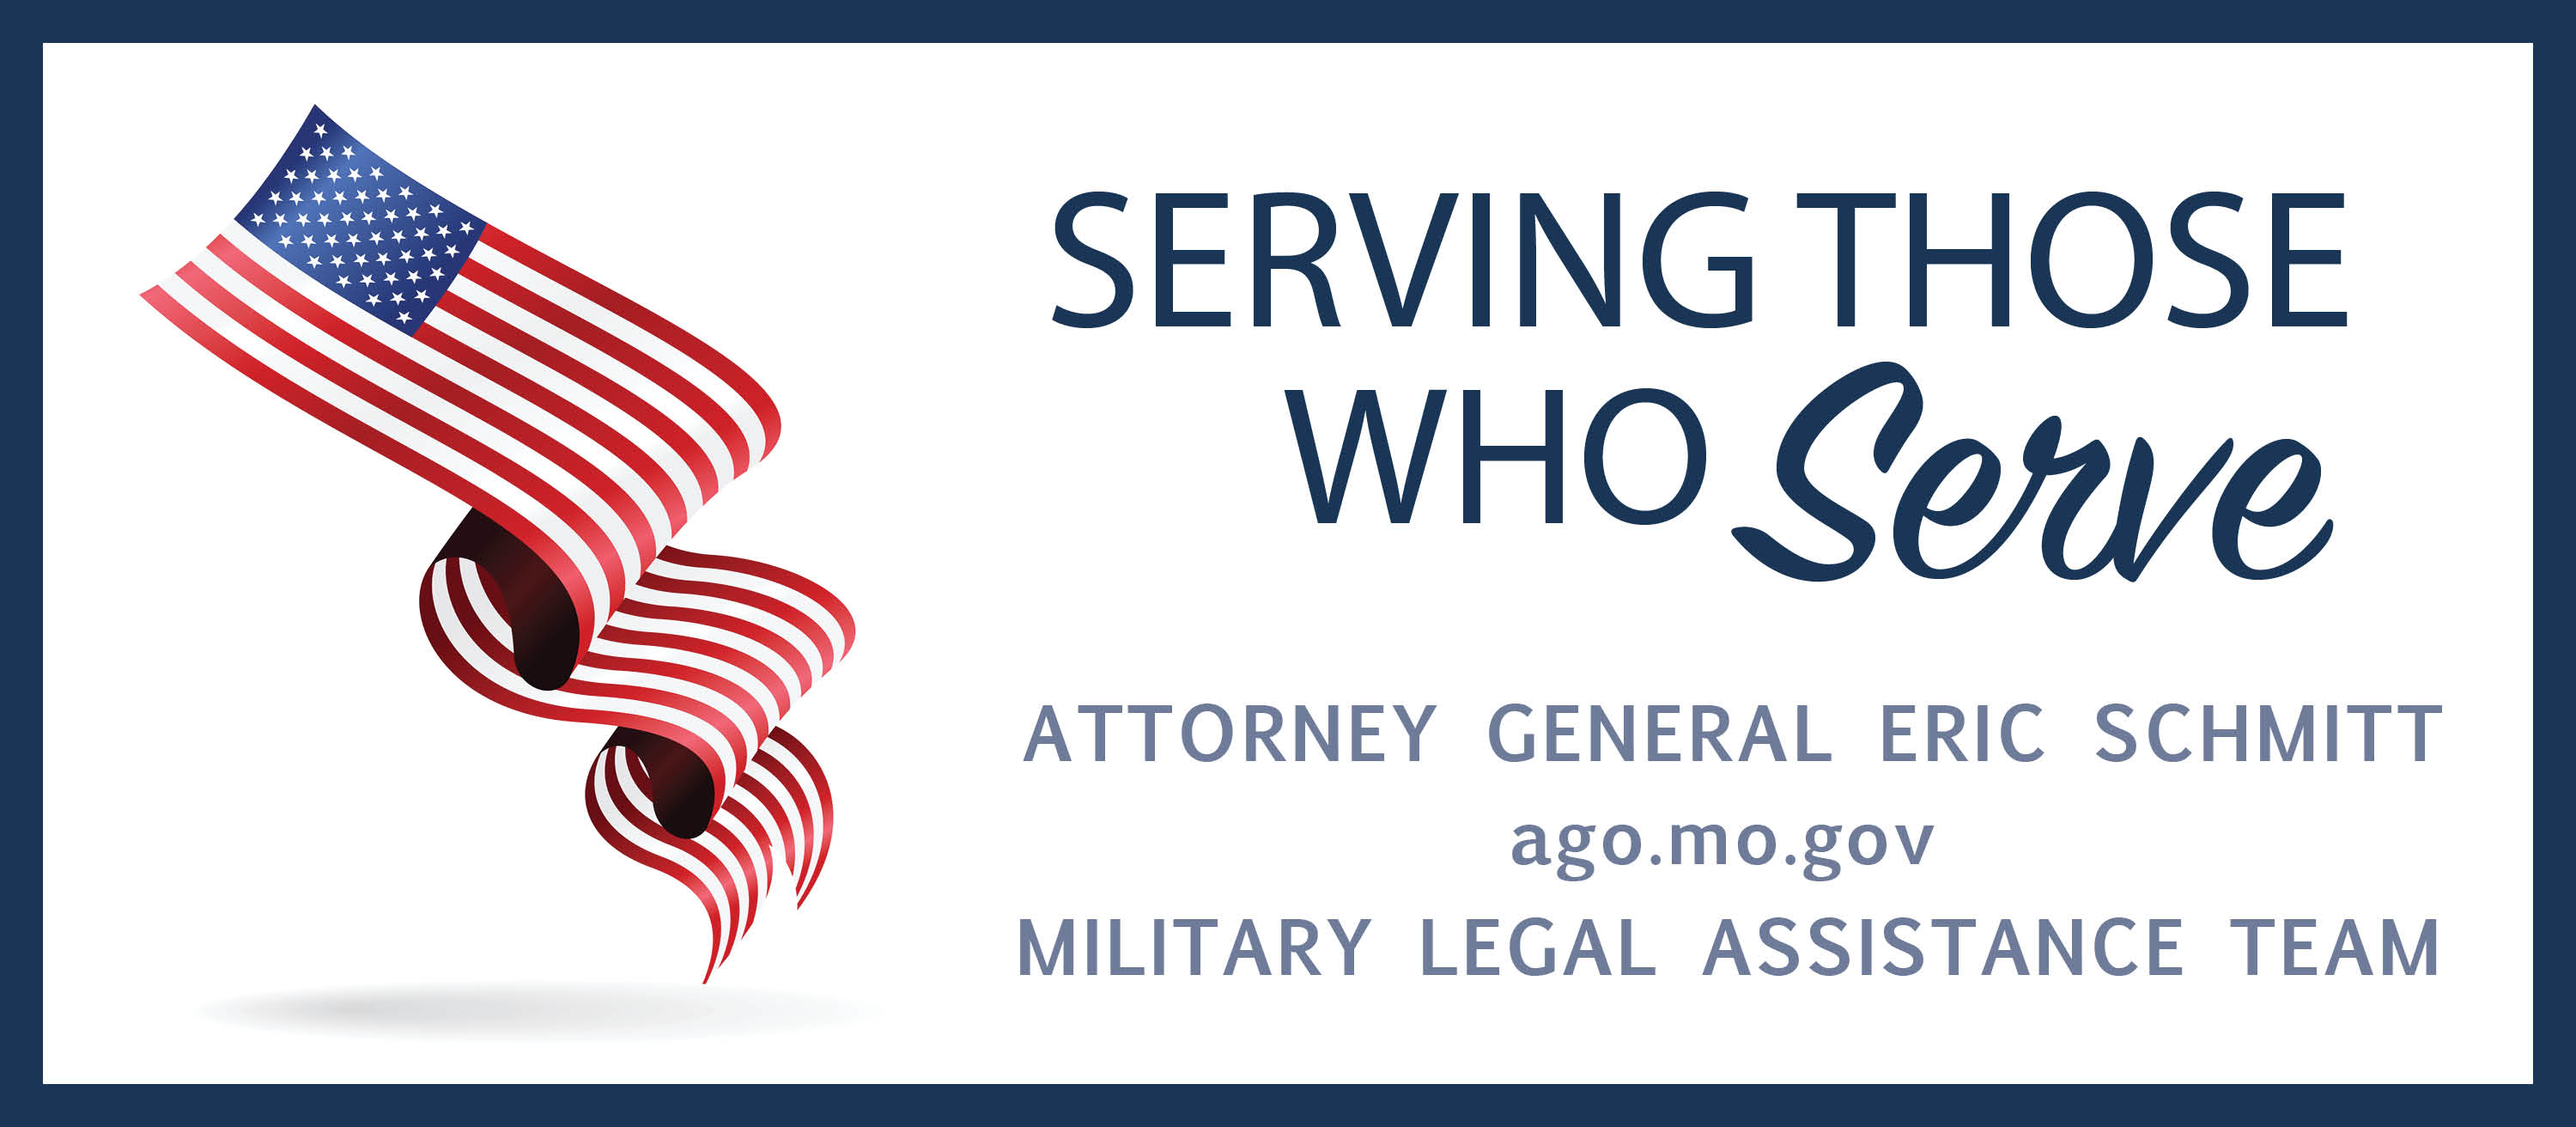 Military Legal Assistance Team